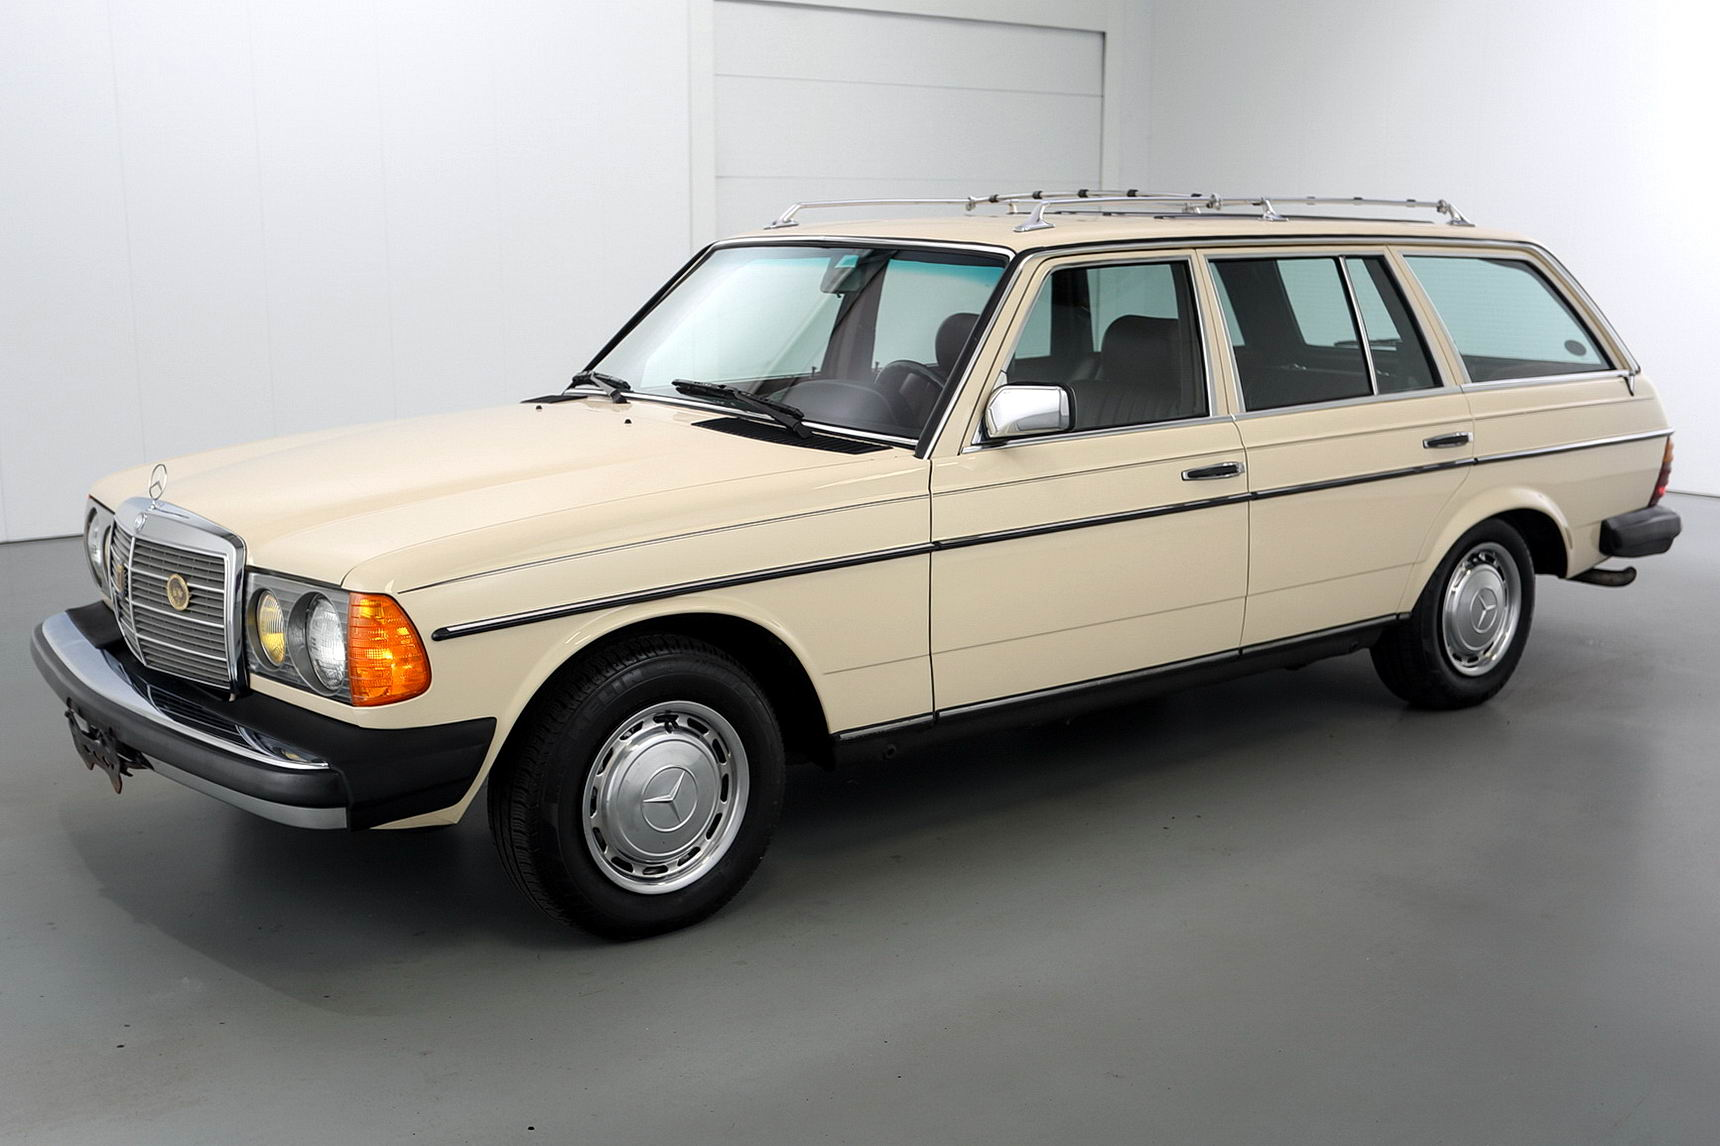 1985 mercedes benz 300td estate wagon brutal motors for Mercedes benz wagons